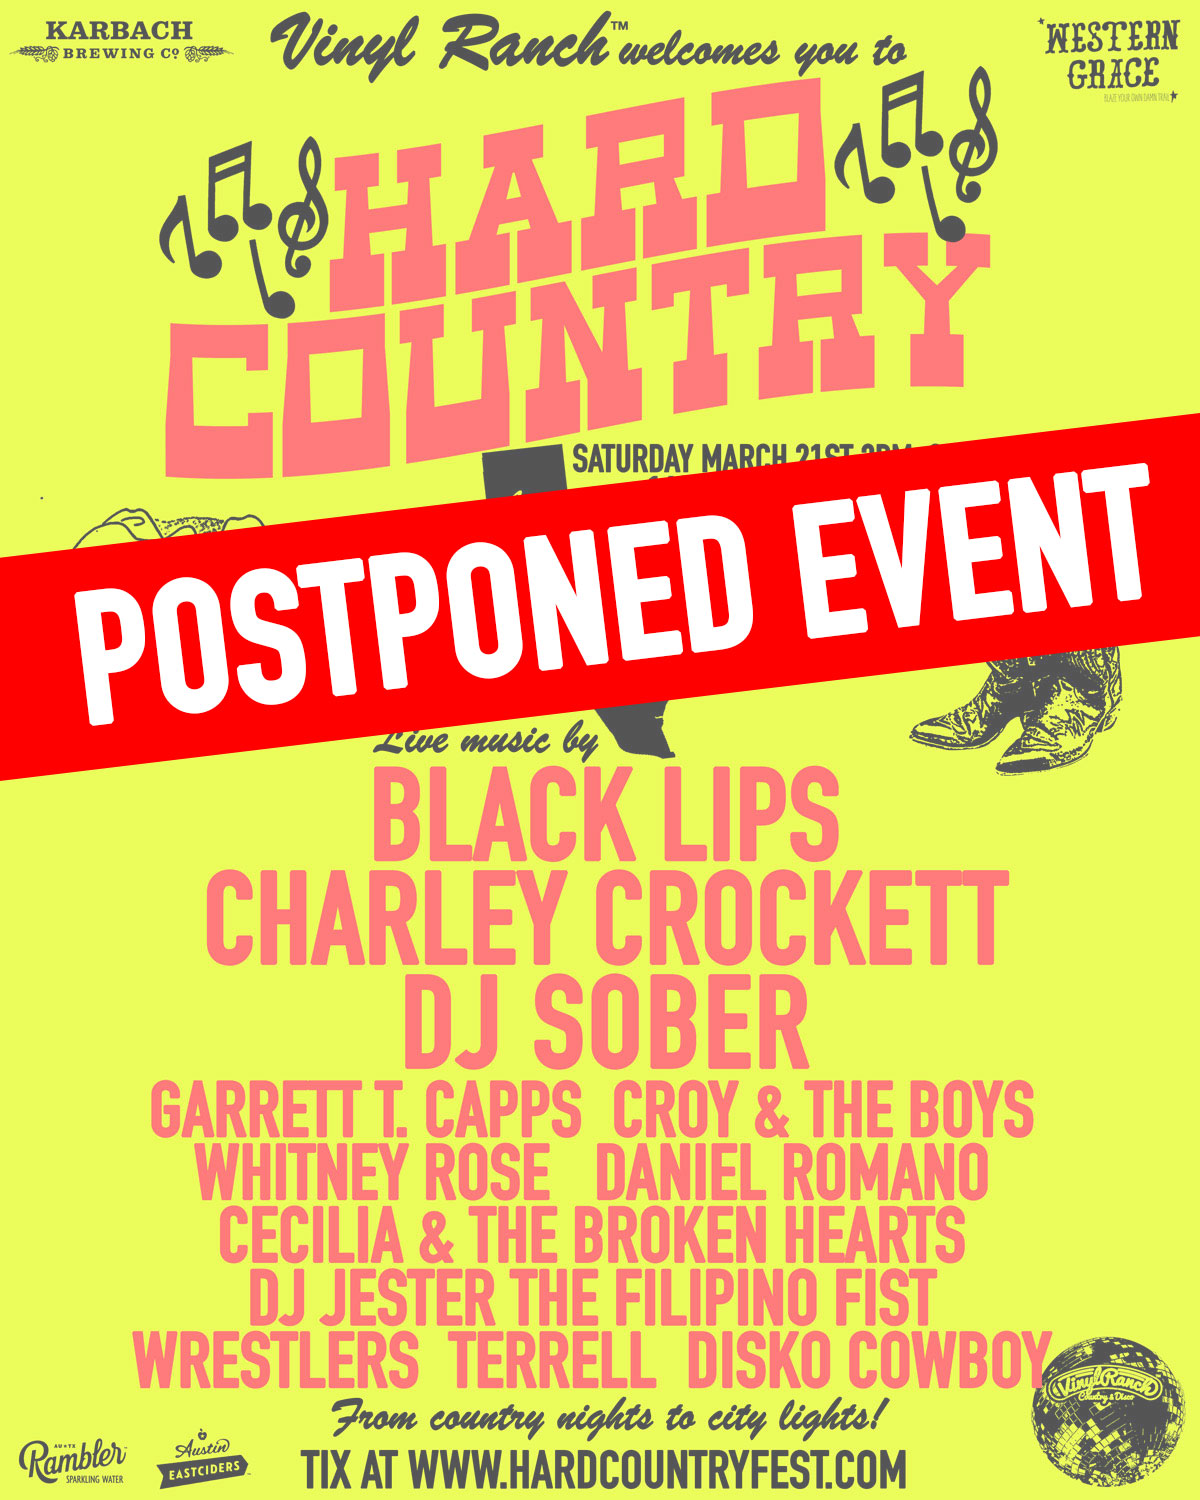 HARD COUNTRY FEST 2020 POSTPONED